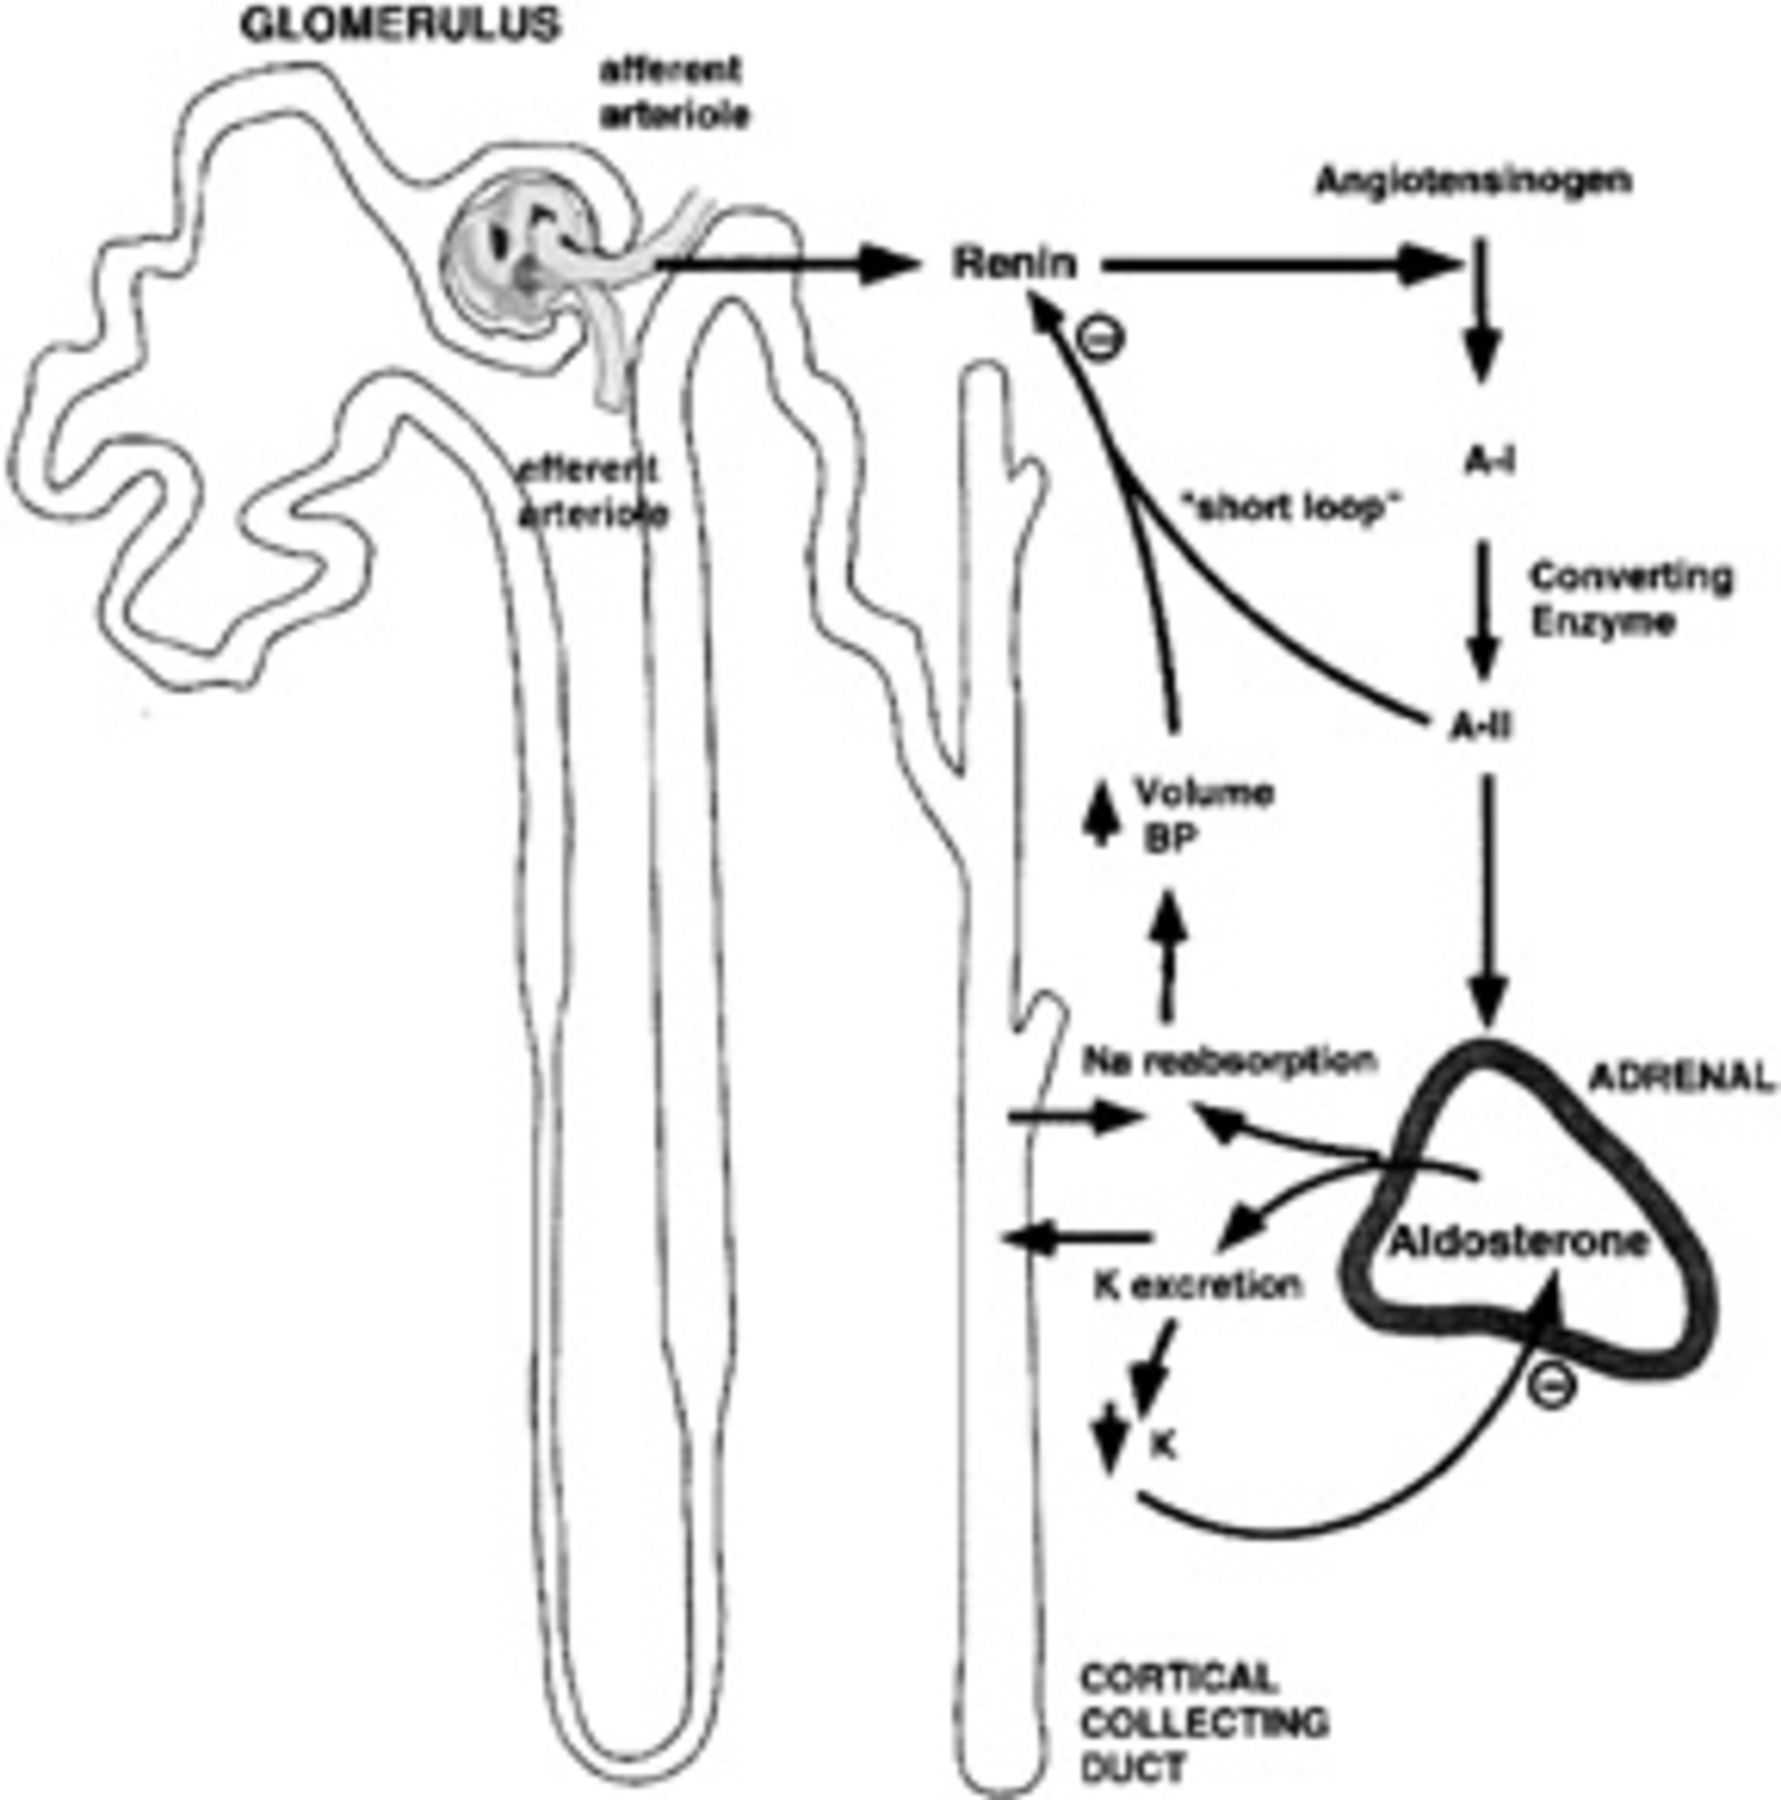 Intracardiac and Intrarenal Renin-Angiotensin Systems